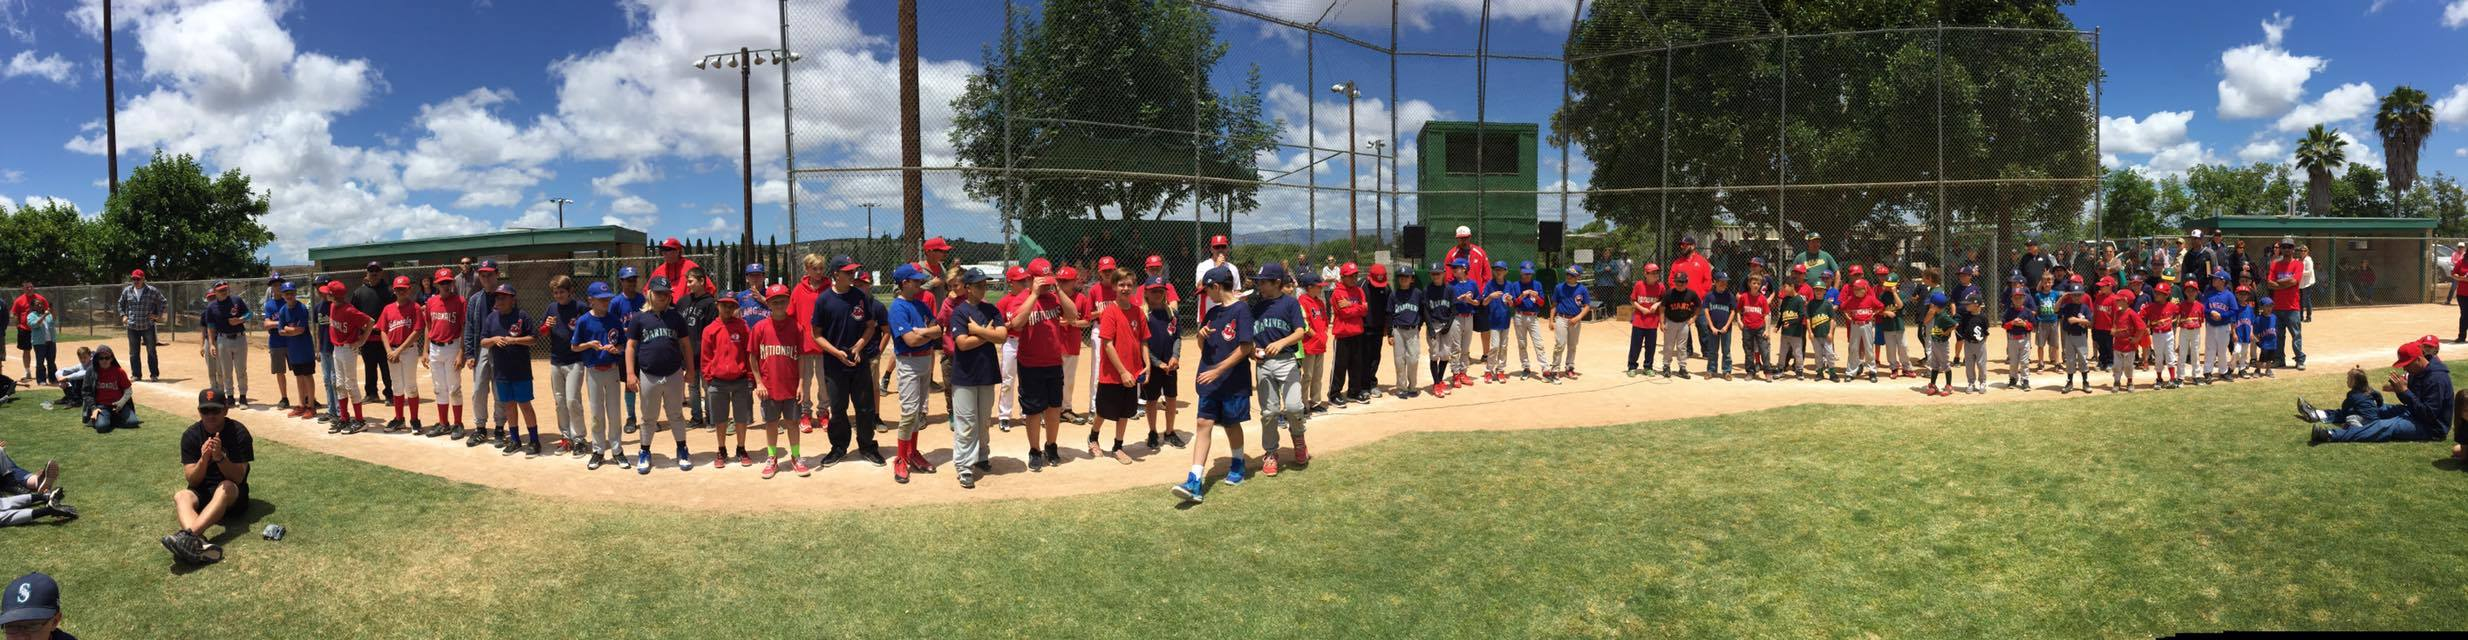 fallbrook youth baseball pre all star tour nt schedule link